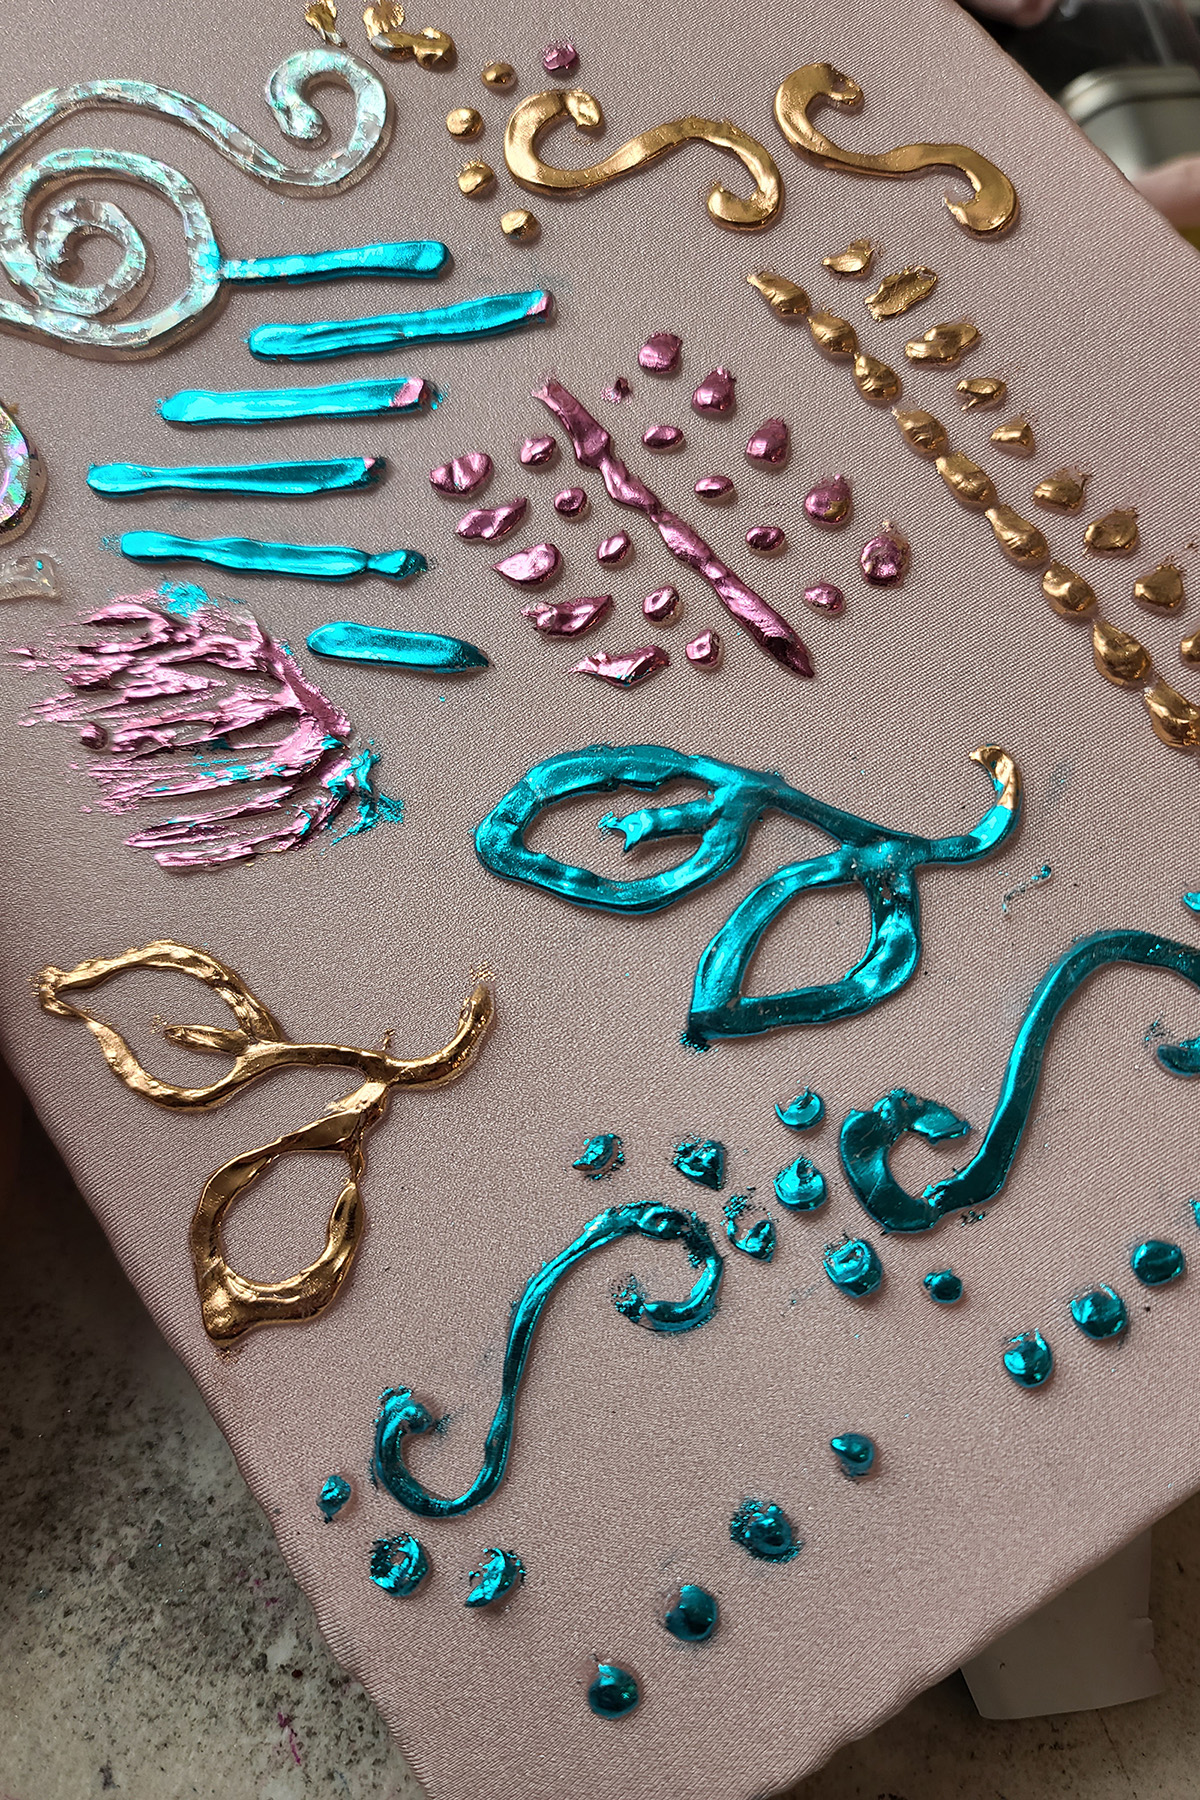 A piece of stretched pale pink spandex, covered with foil designs and doodles in copper, pink, and teal.